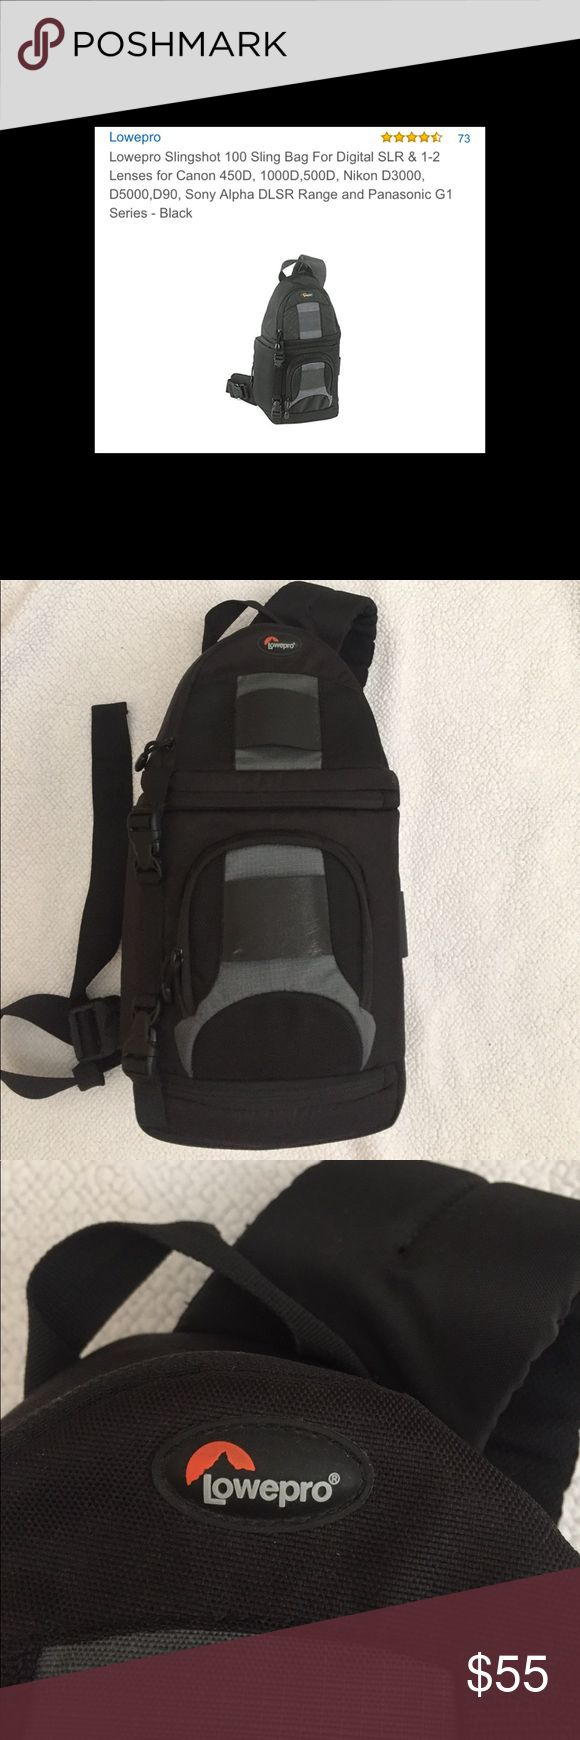 Lowepro camera bag Balck and grey Lowepro sling camera bag. Used but in great condition. Minor scuffing shown in pic 8. Sling band goes across chest. Great as a starter camera bag! Lowepro Accessories